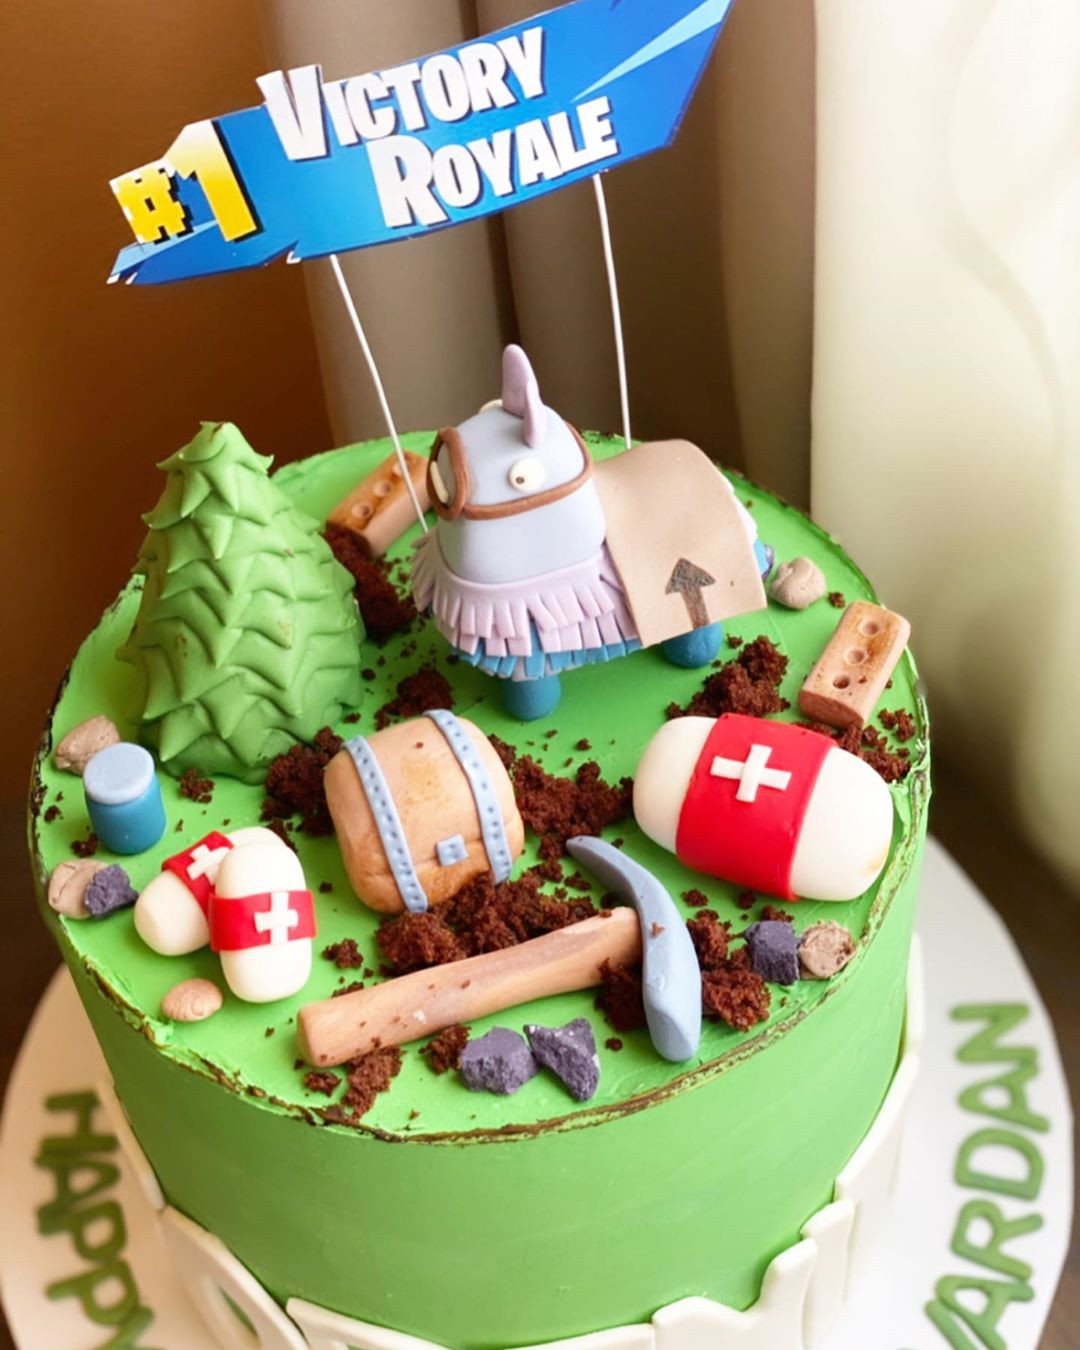 50 Fortnite Cake Ideas for Birthday Party in 2020,easy fortnite cake,fortnite cake images,fortnite cake ideas easy,fortnite cake decorations